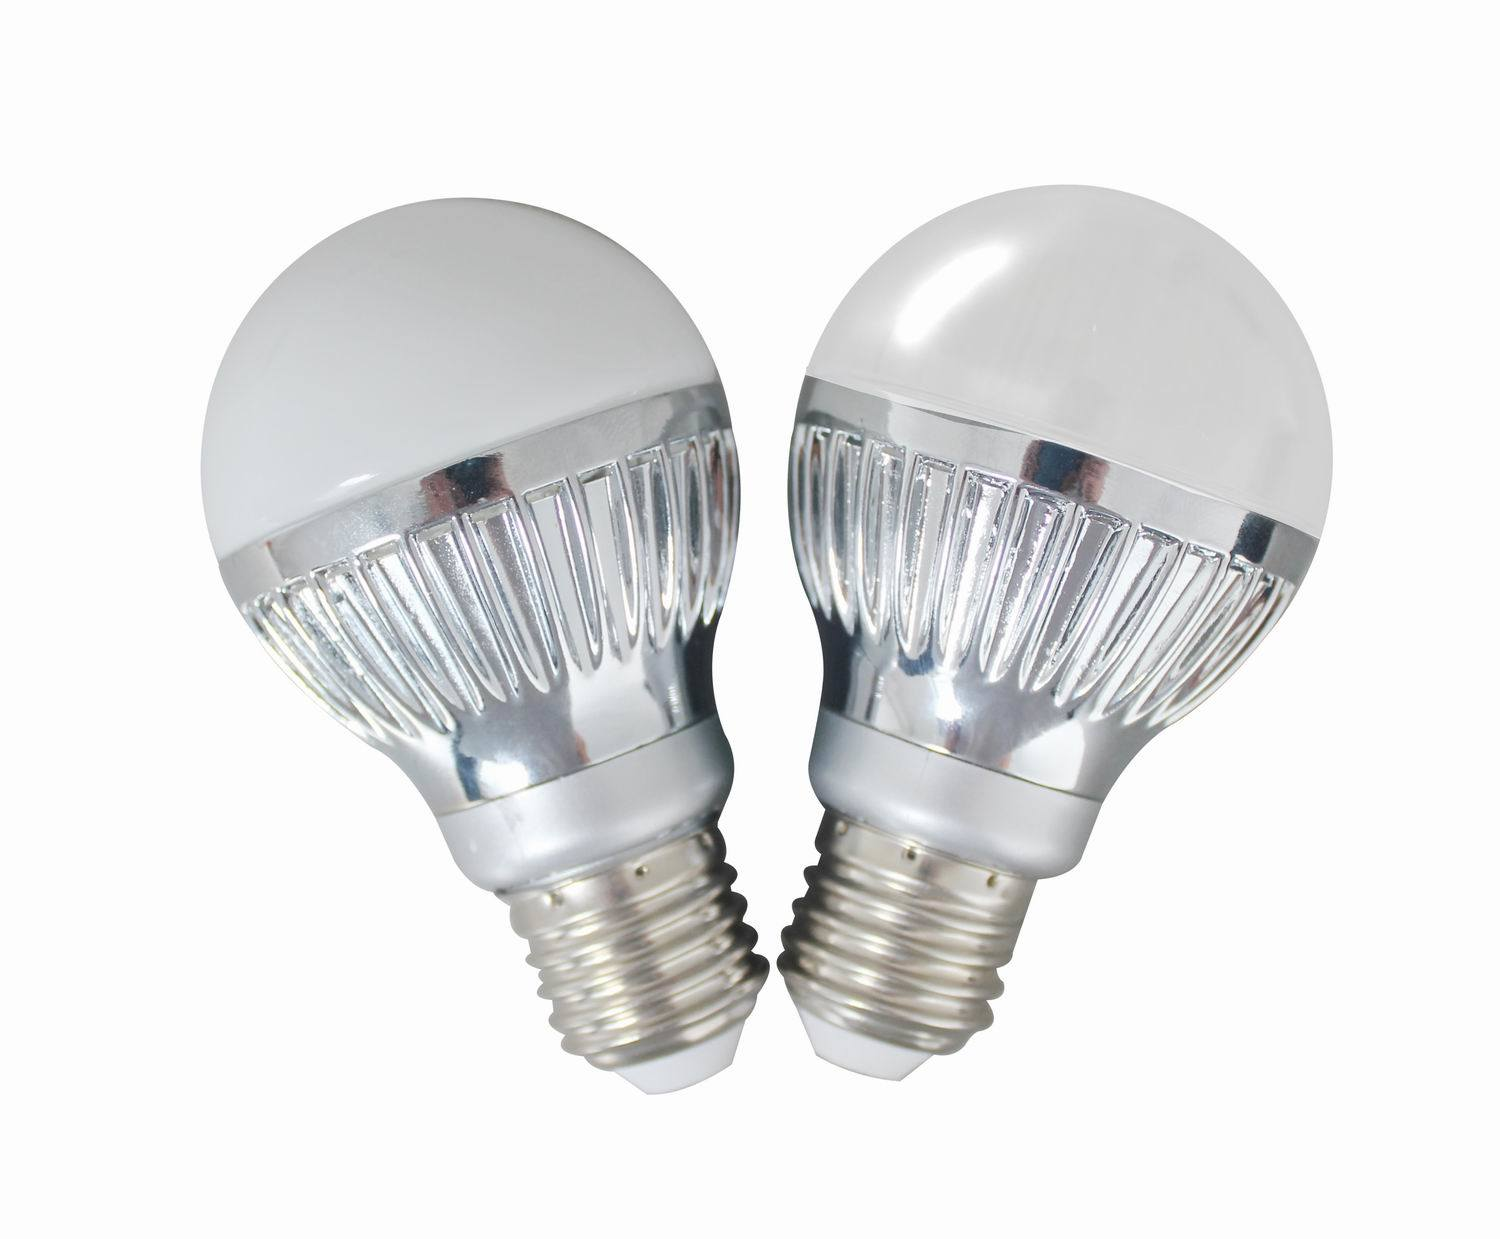 China led bulbs hx lb60w 7 1w 220v photos pictures made in Led bulbs